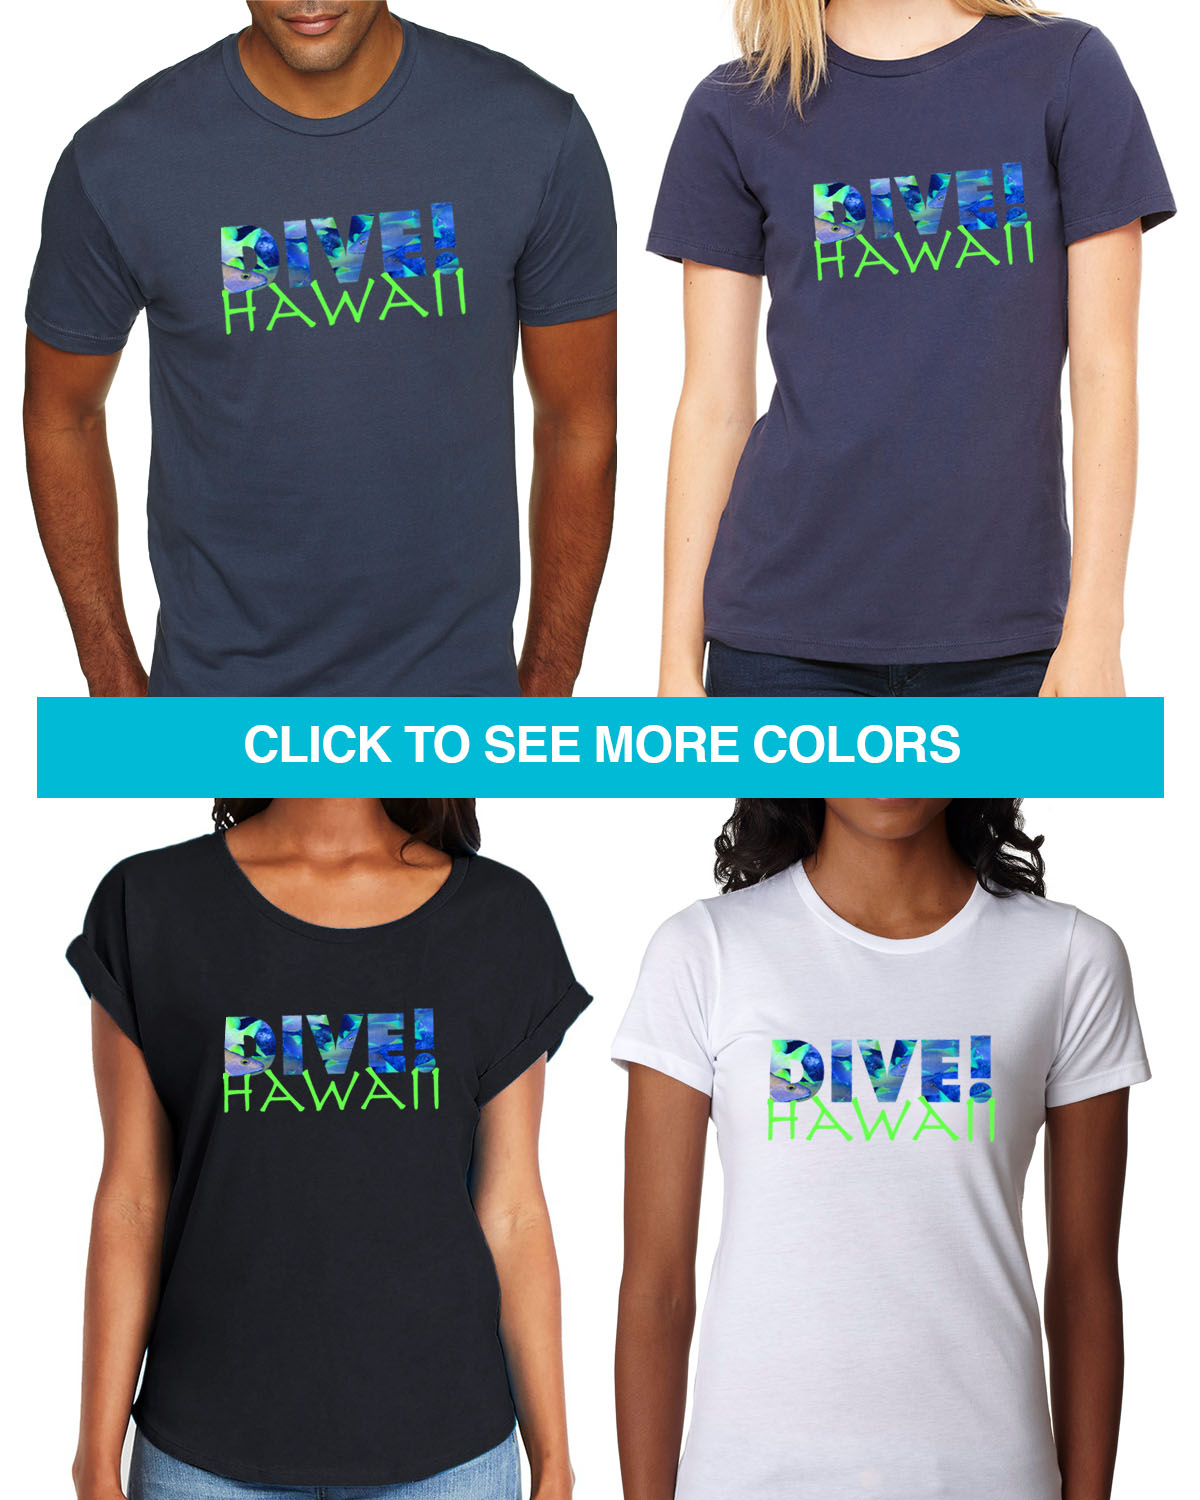 Short sleeve Dive Hawaii t-shirt for men and women